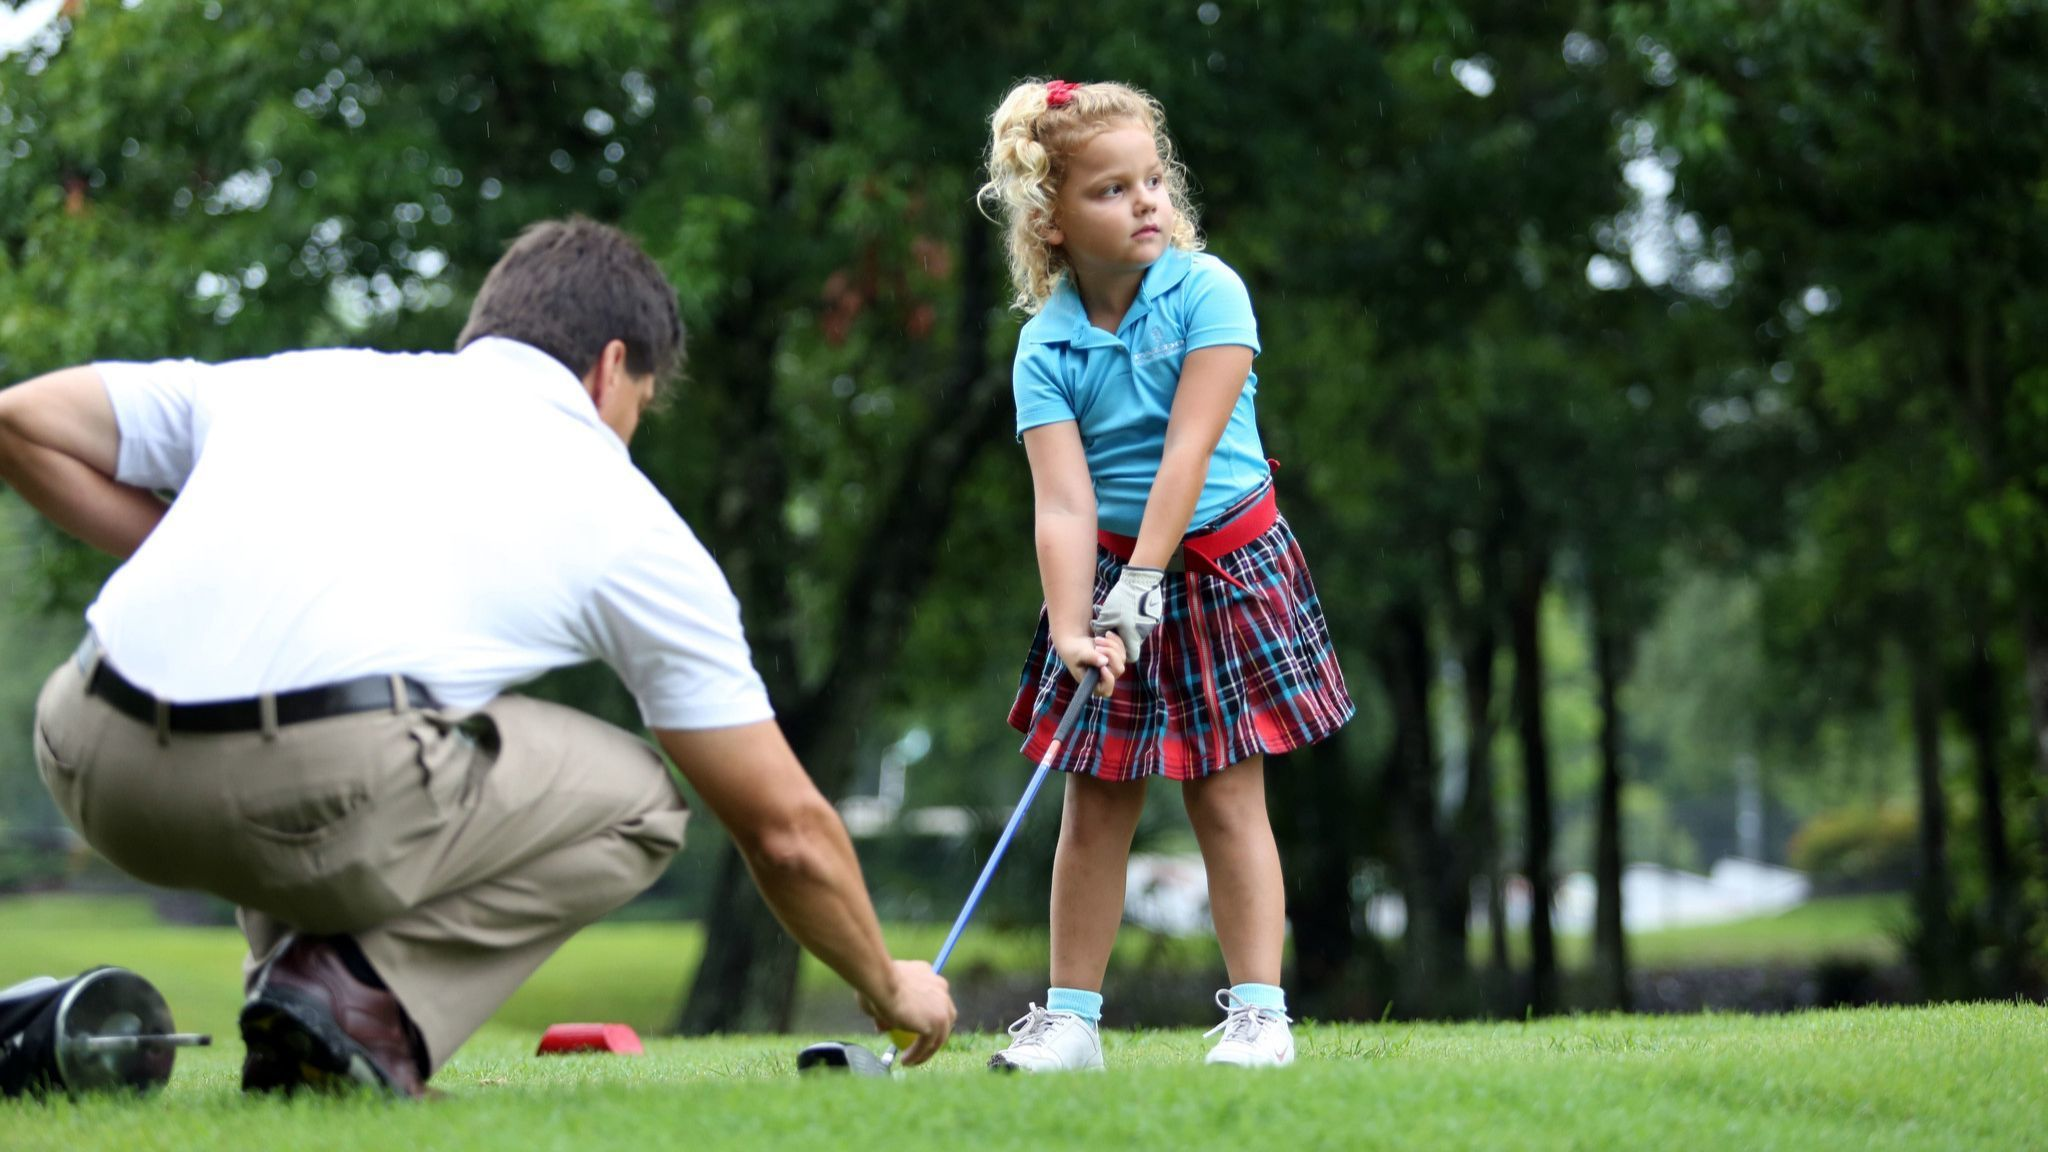 Dad Michael Dovhey sets up a ball for Bella Douvhey, 5-year-old from Oviedo, at Twin Rivers Golf Clu